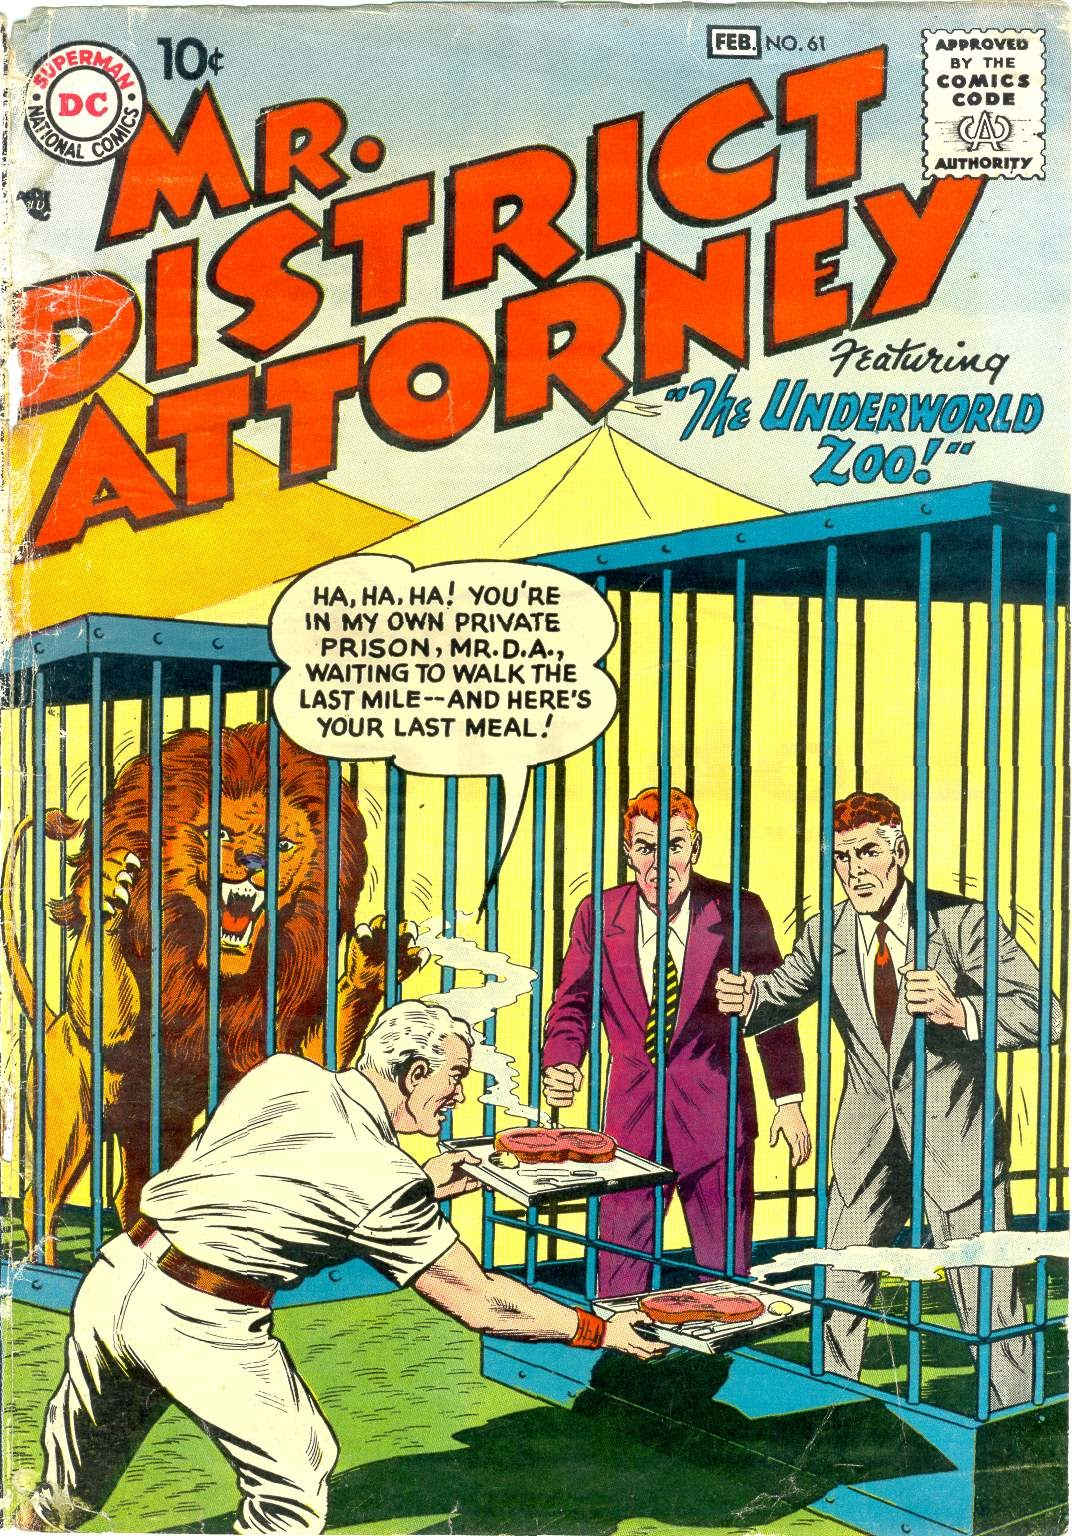 Mr. District Attorney issue 61 - Page 1